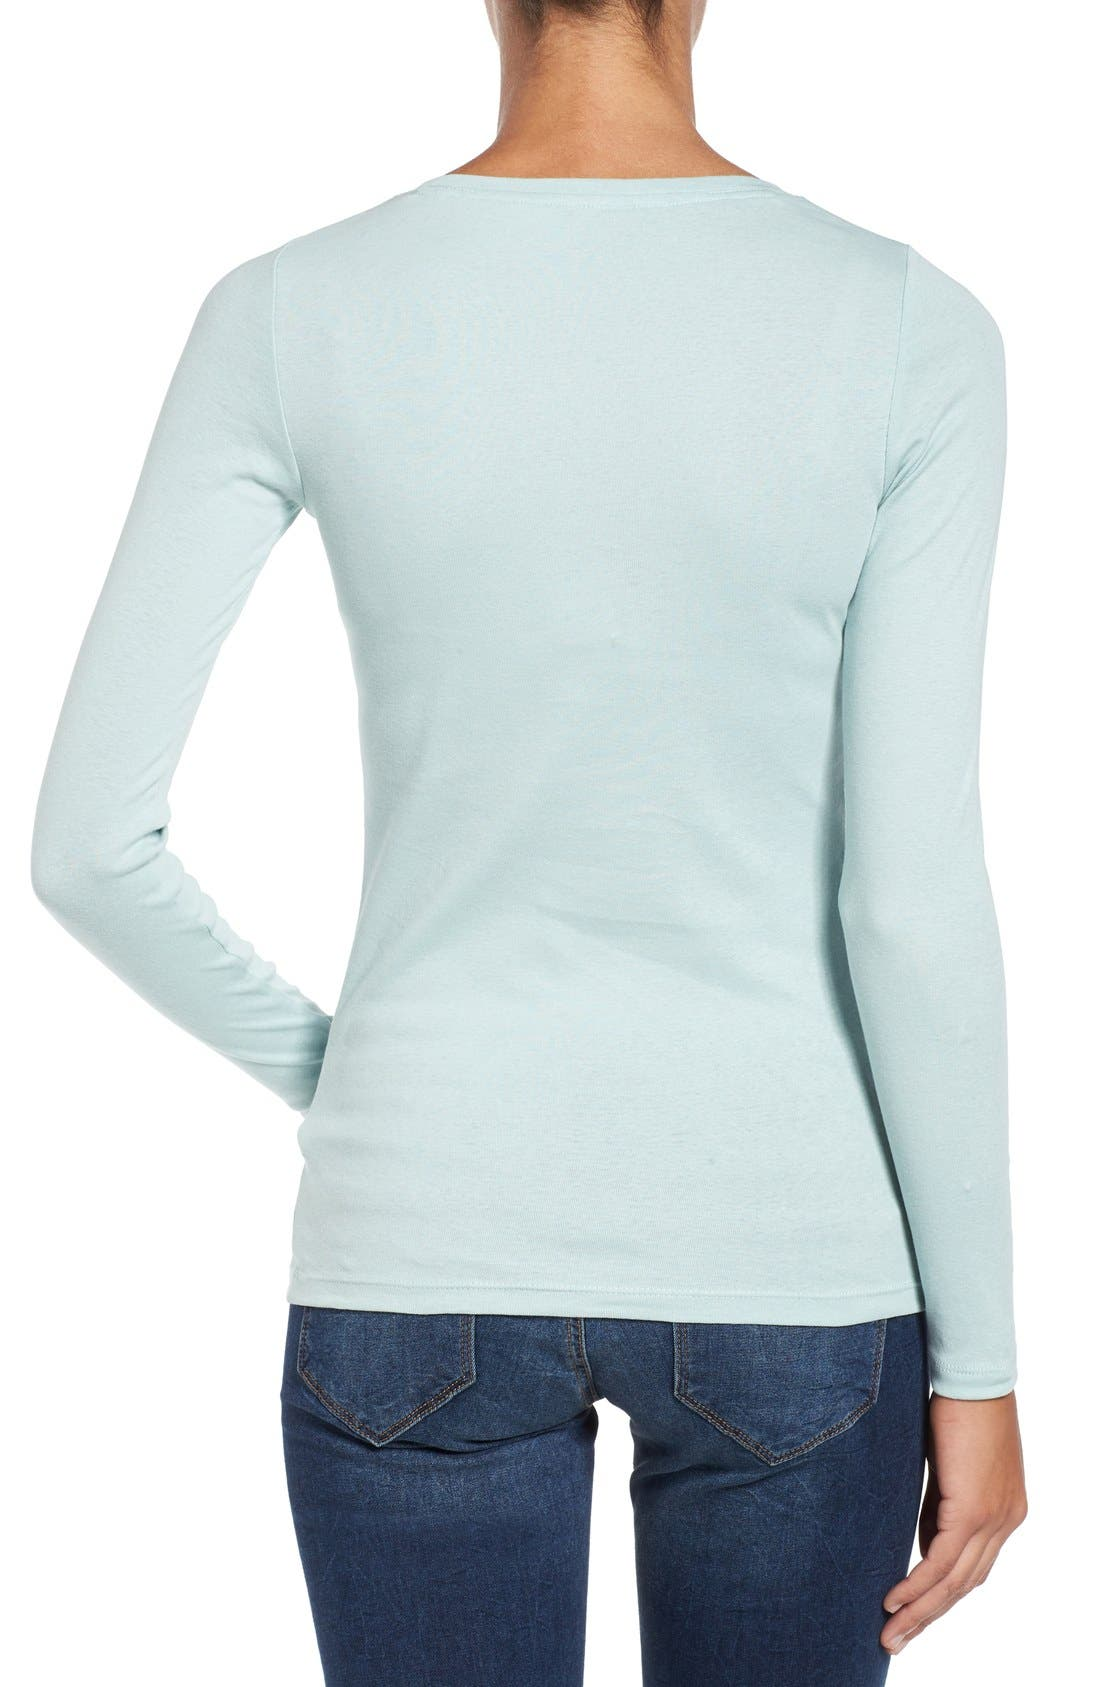 Alternate Image 2  - Caslon® Long Sleeve Scoop Neck Cotton Tee (Regular & Petite)